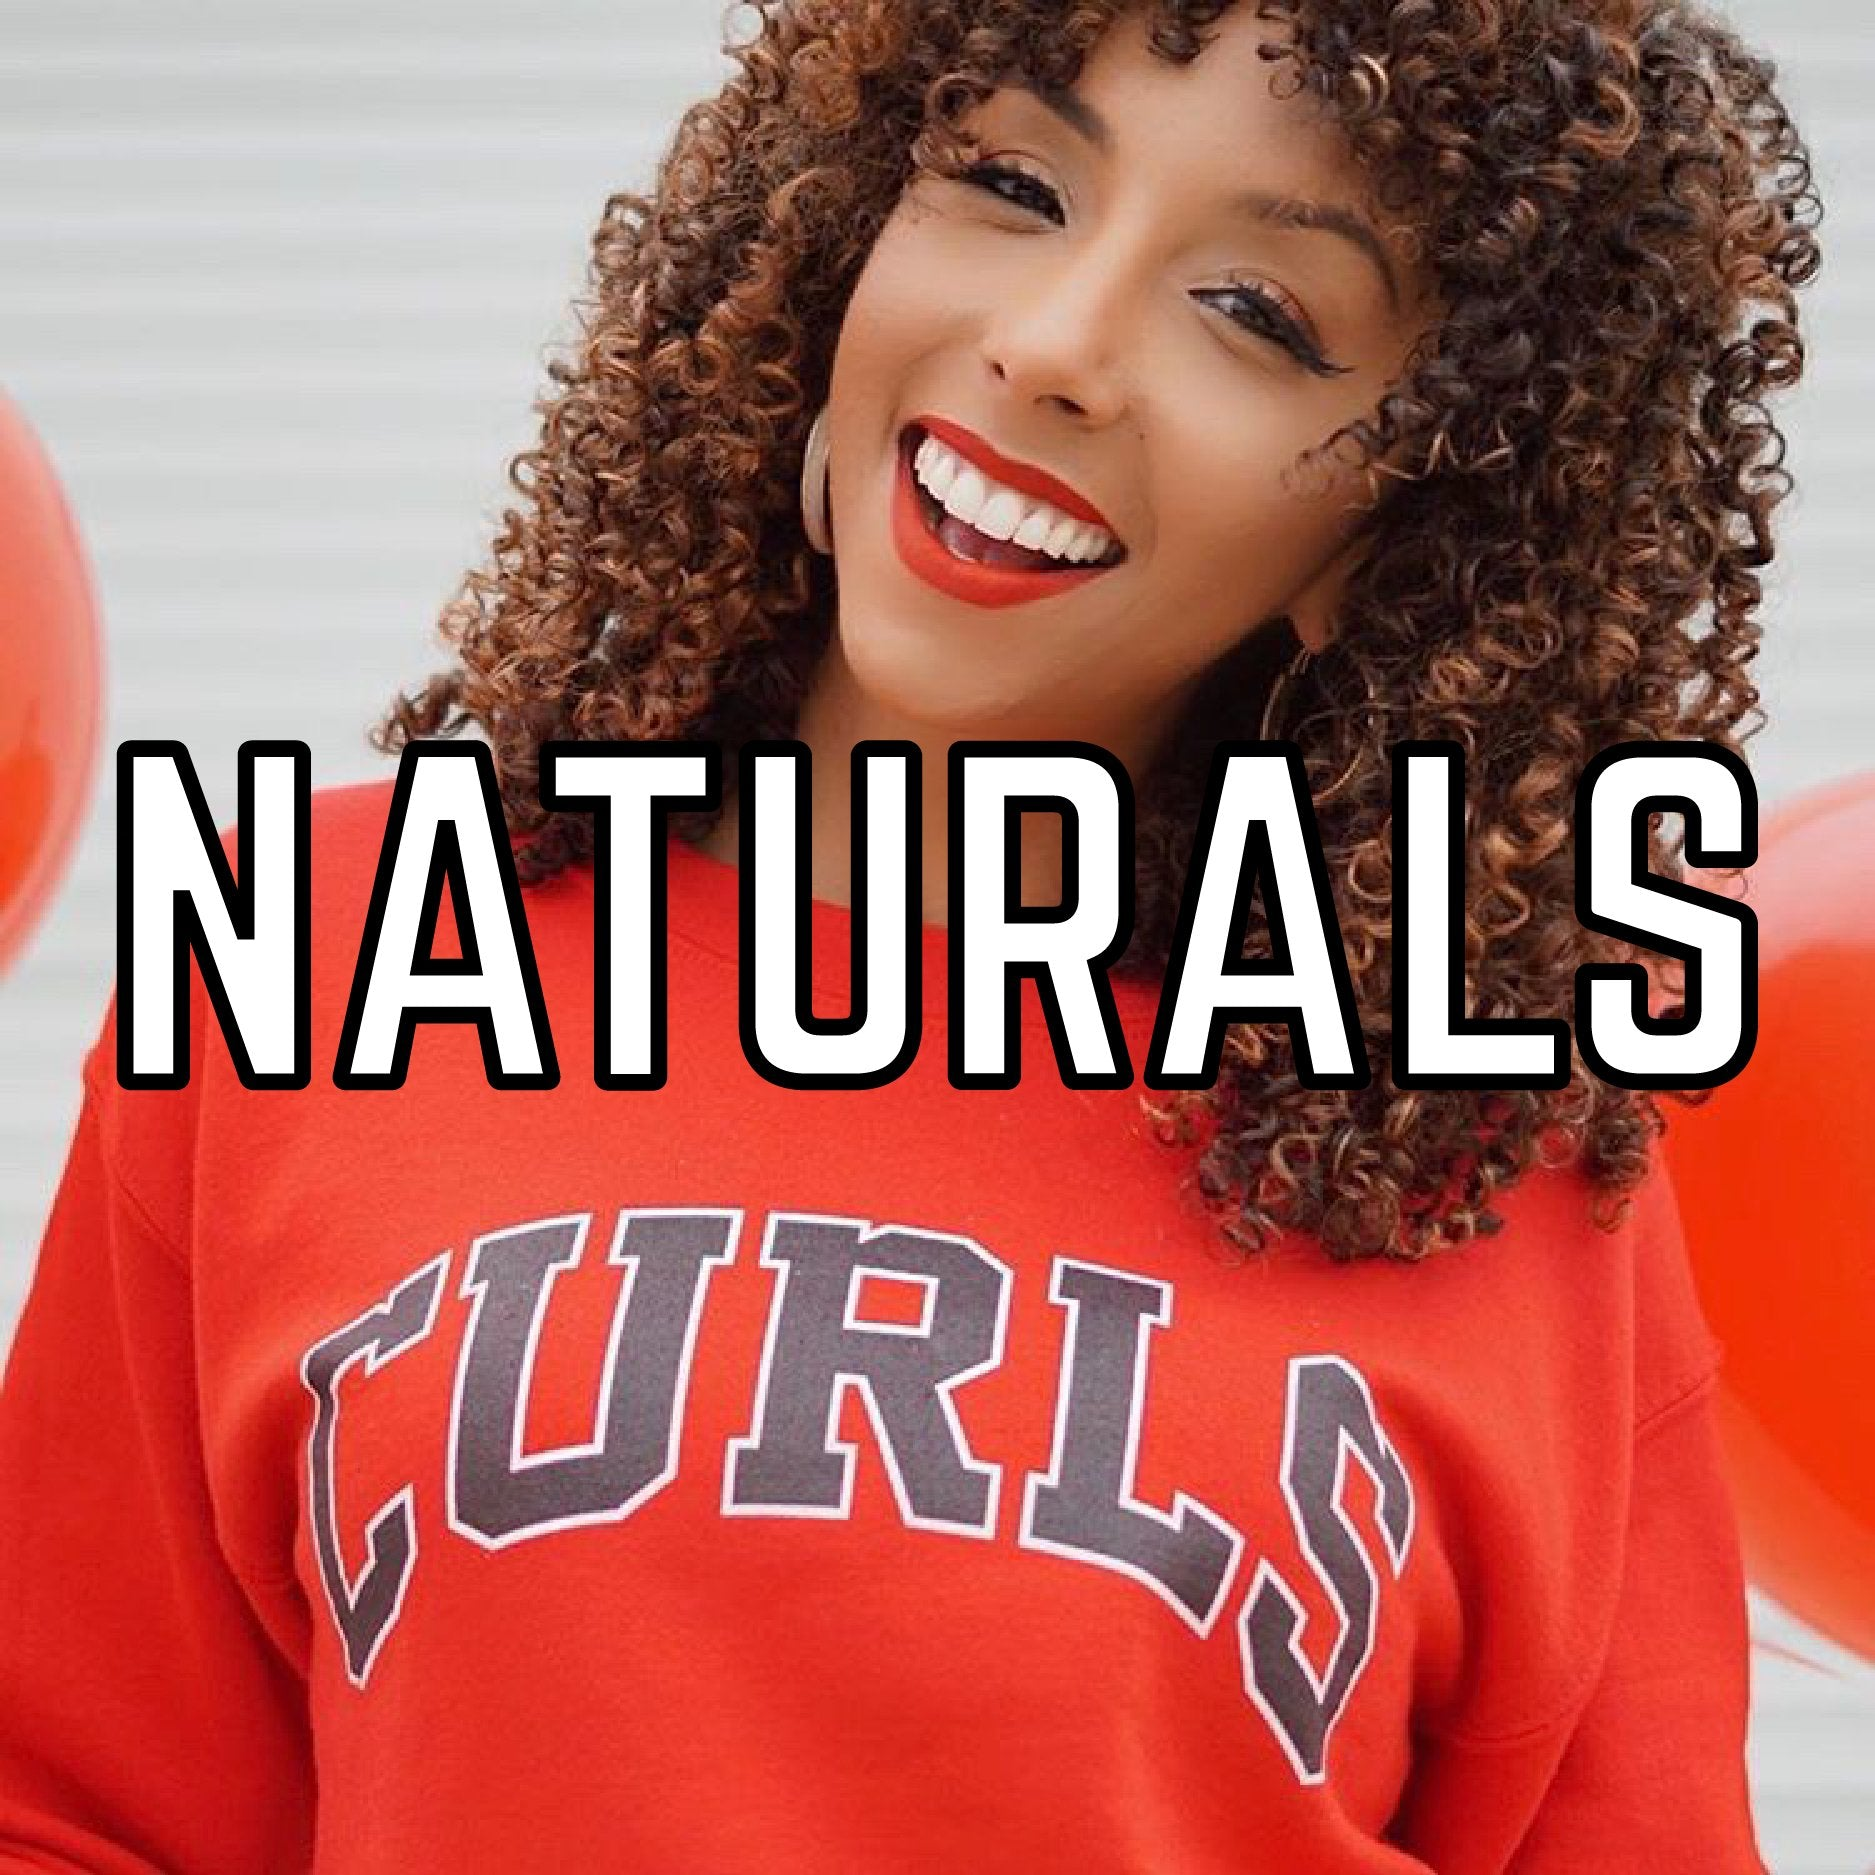 Naturals Collection | The POC Brand - Black Owned